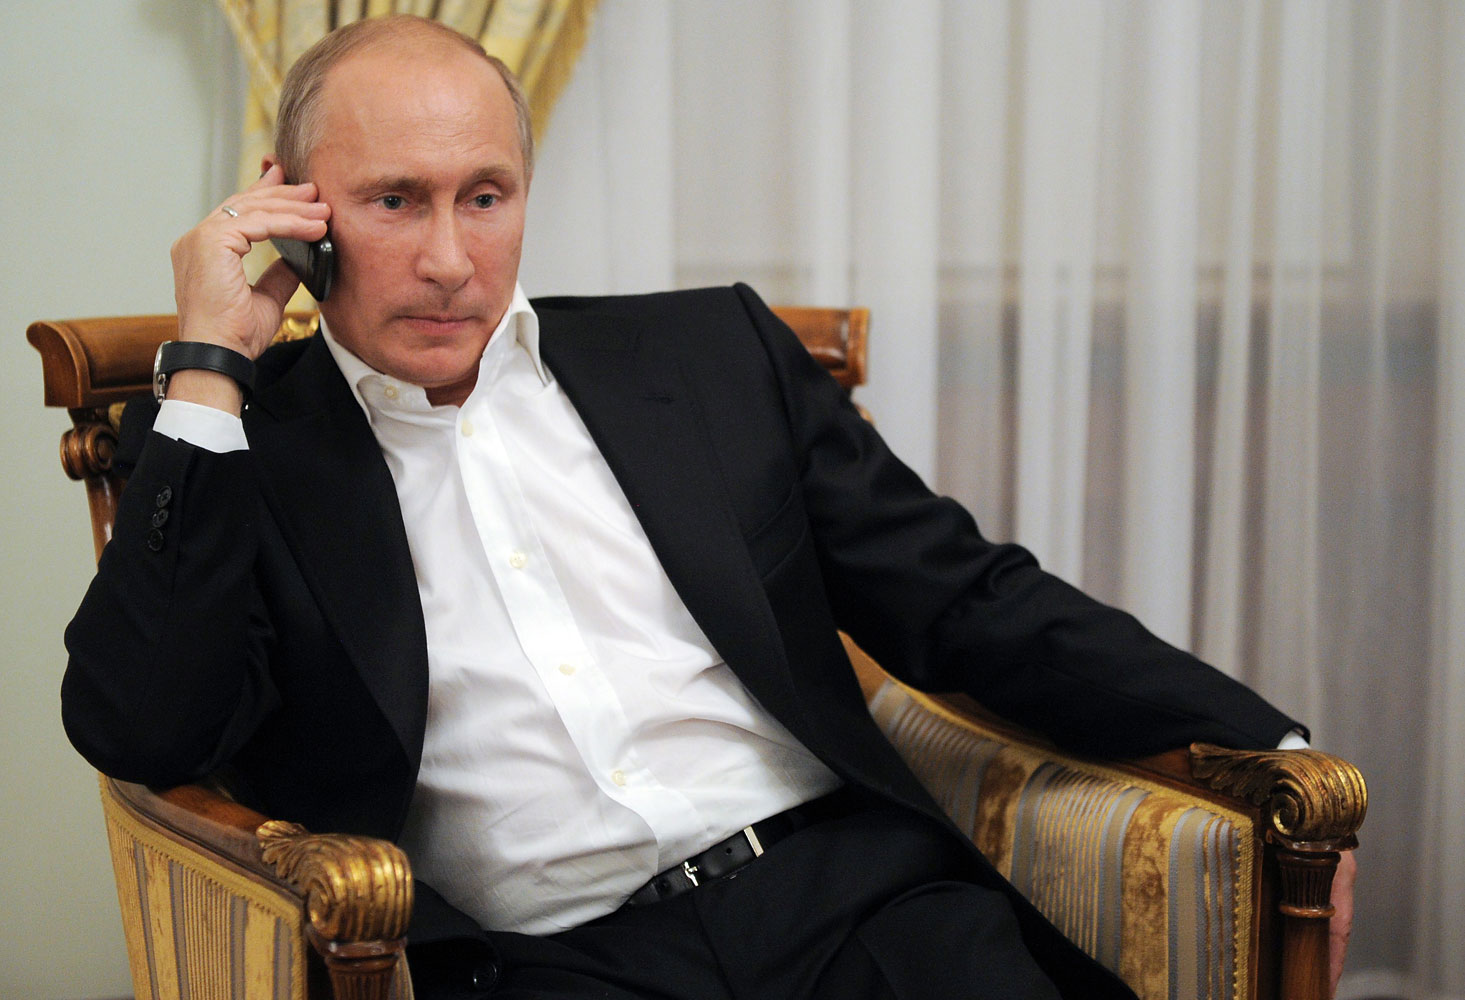 Why Putin does not use mobile phone